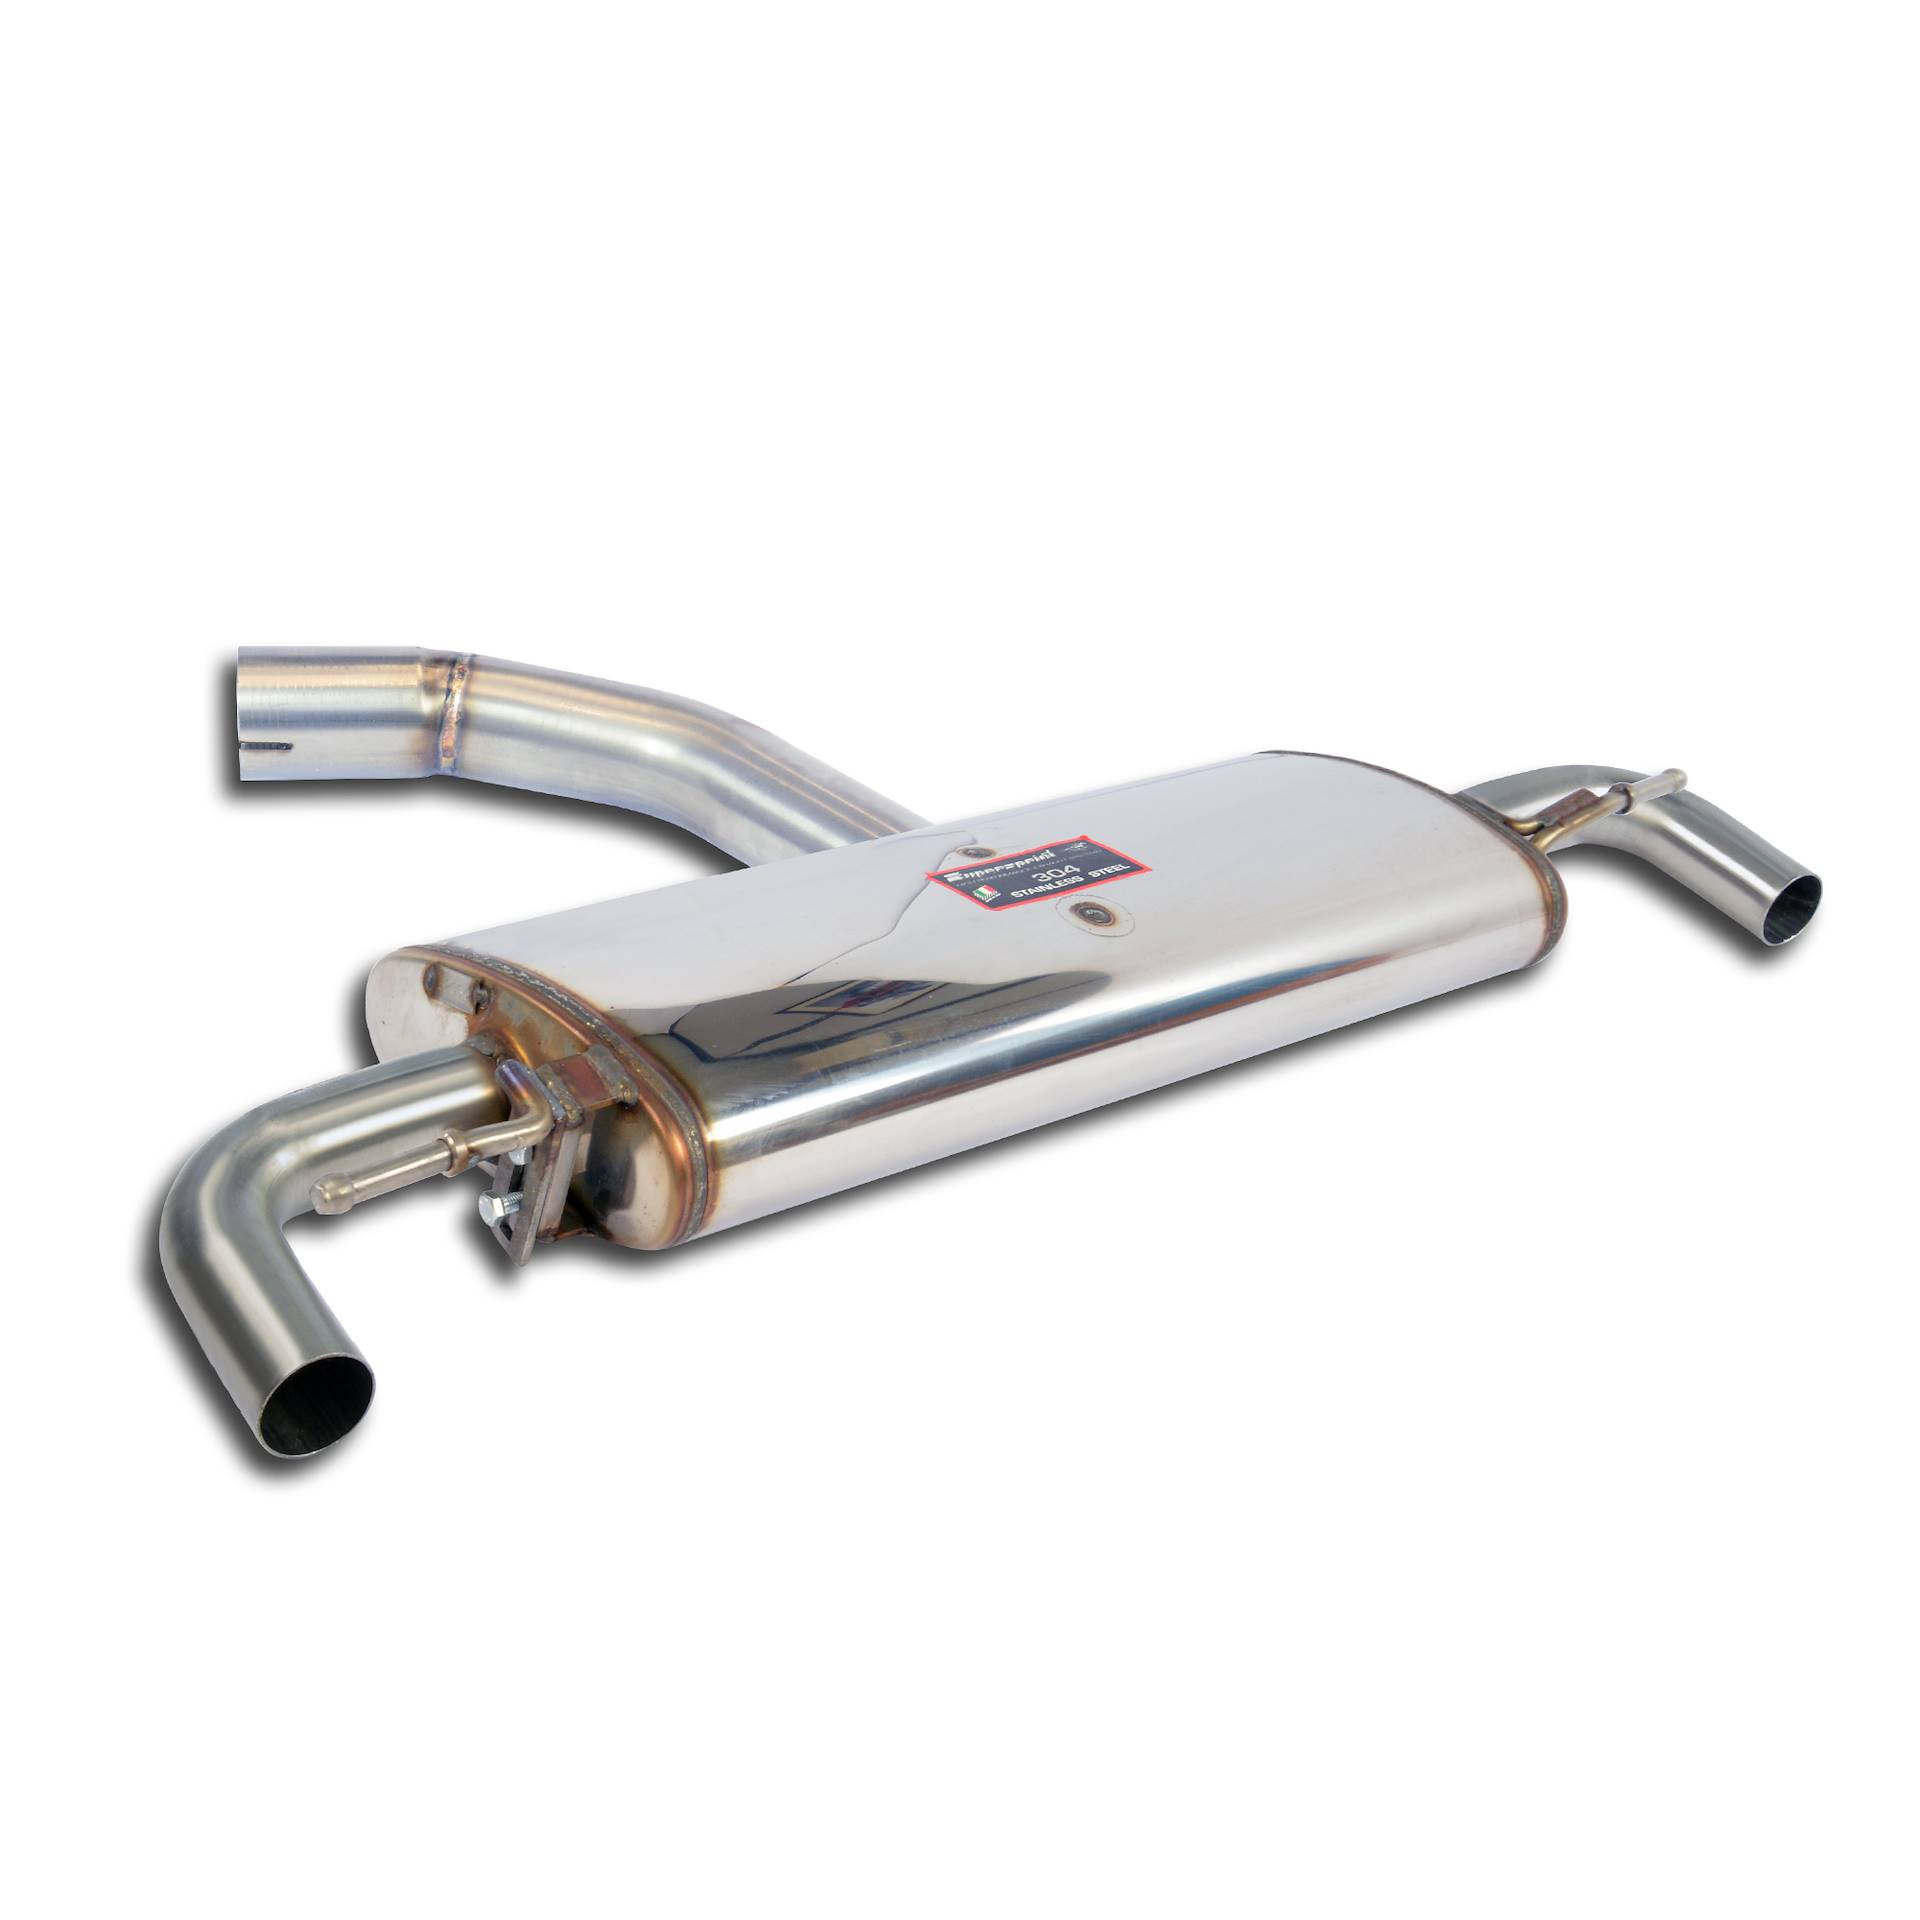 Audi - AUDI A3 8P 1.6 FSI (115 Hp) '03 ->'07 Rear exhaust , performance exhaust systems